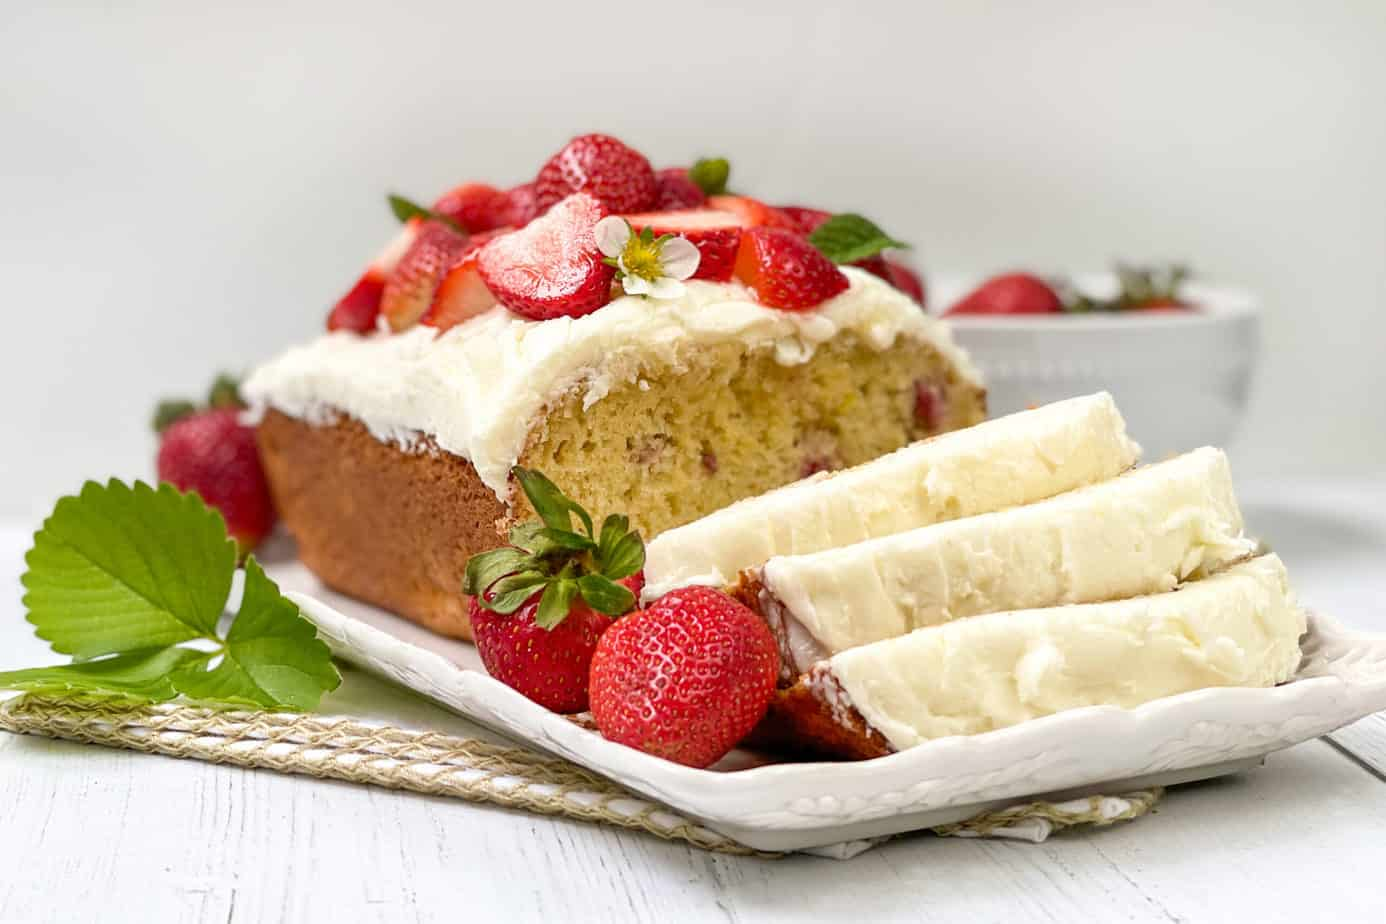 Sliced Strawberry Bread topped with fresh strawberries and icing.